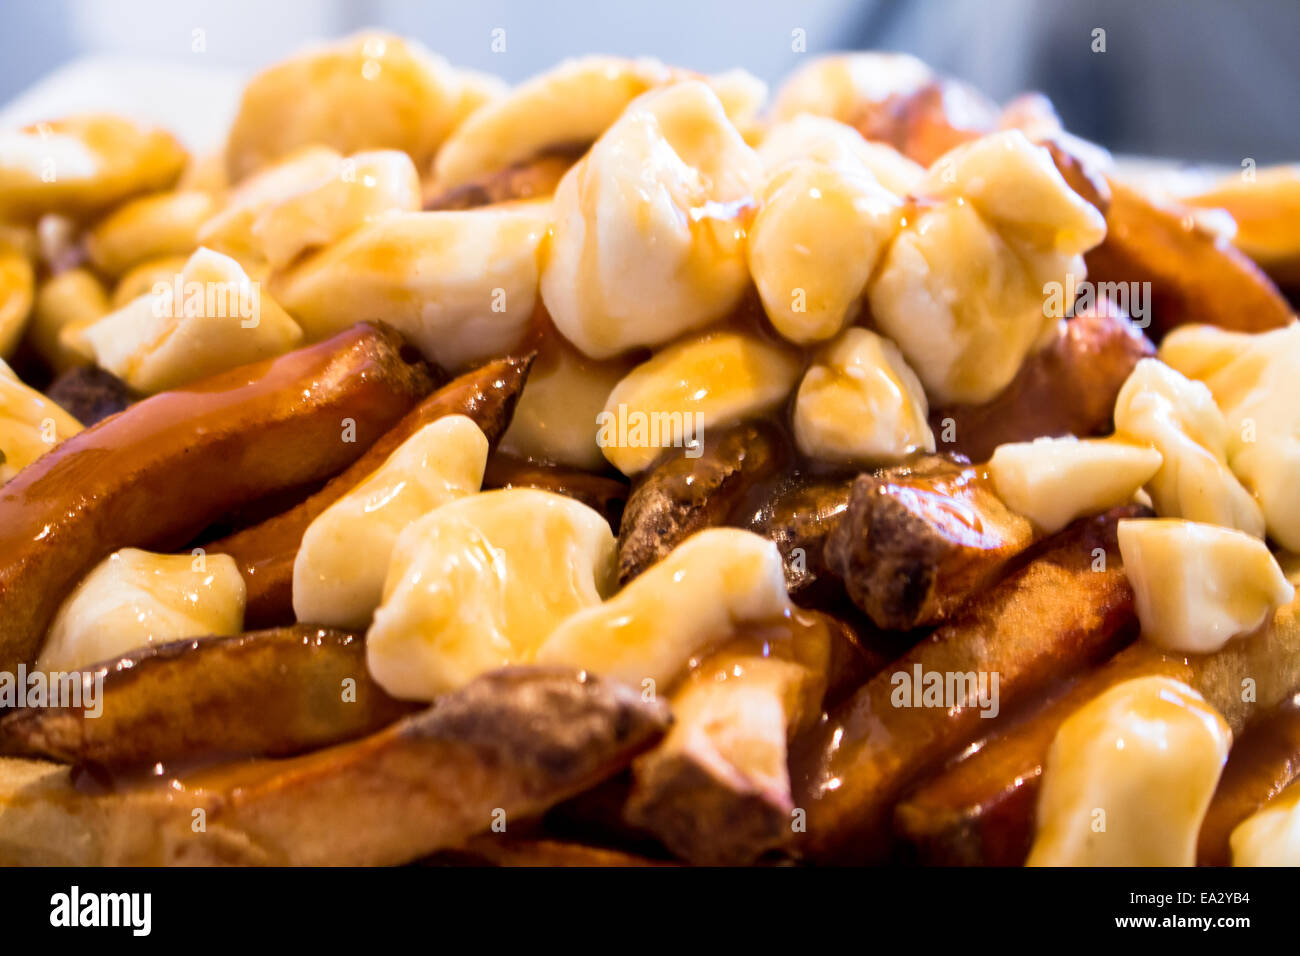 Homemade Poutine - Stock Image